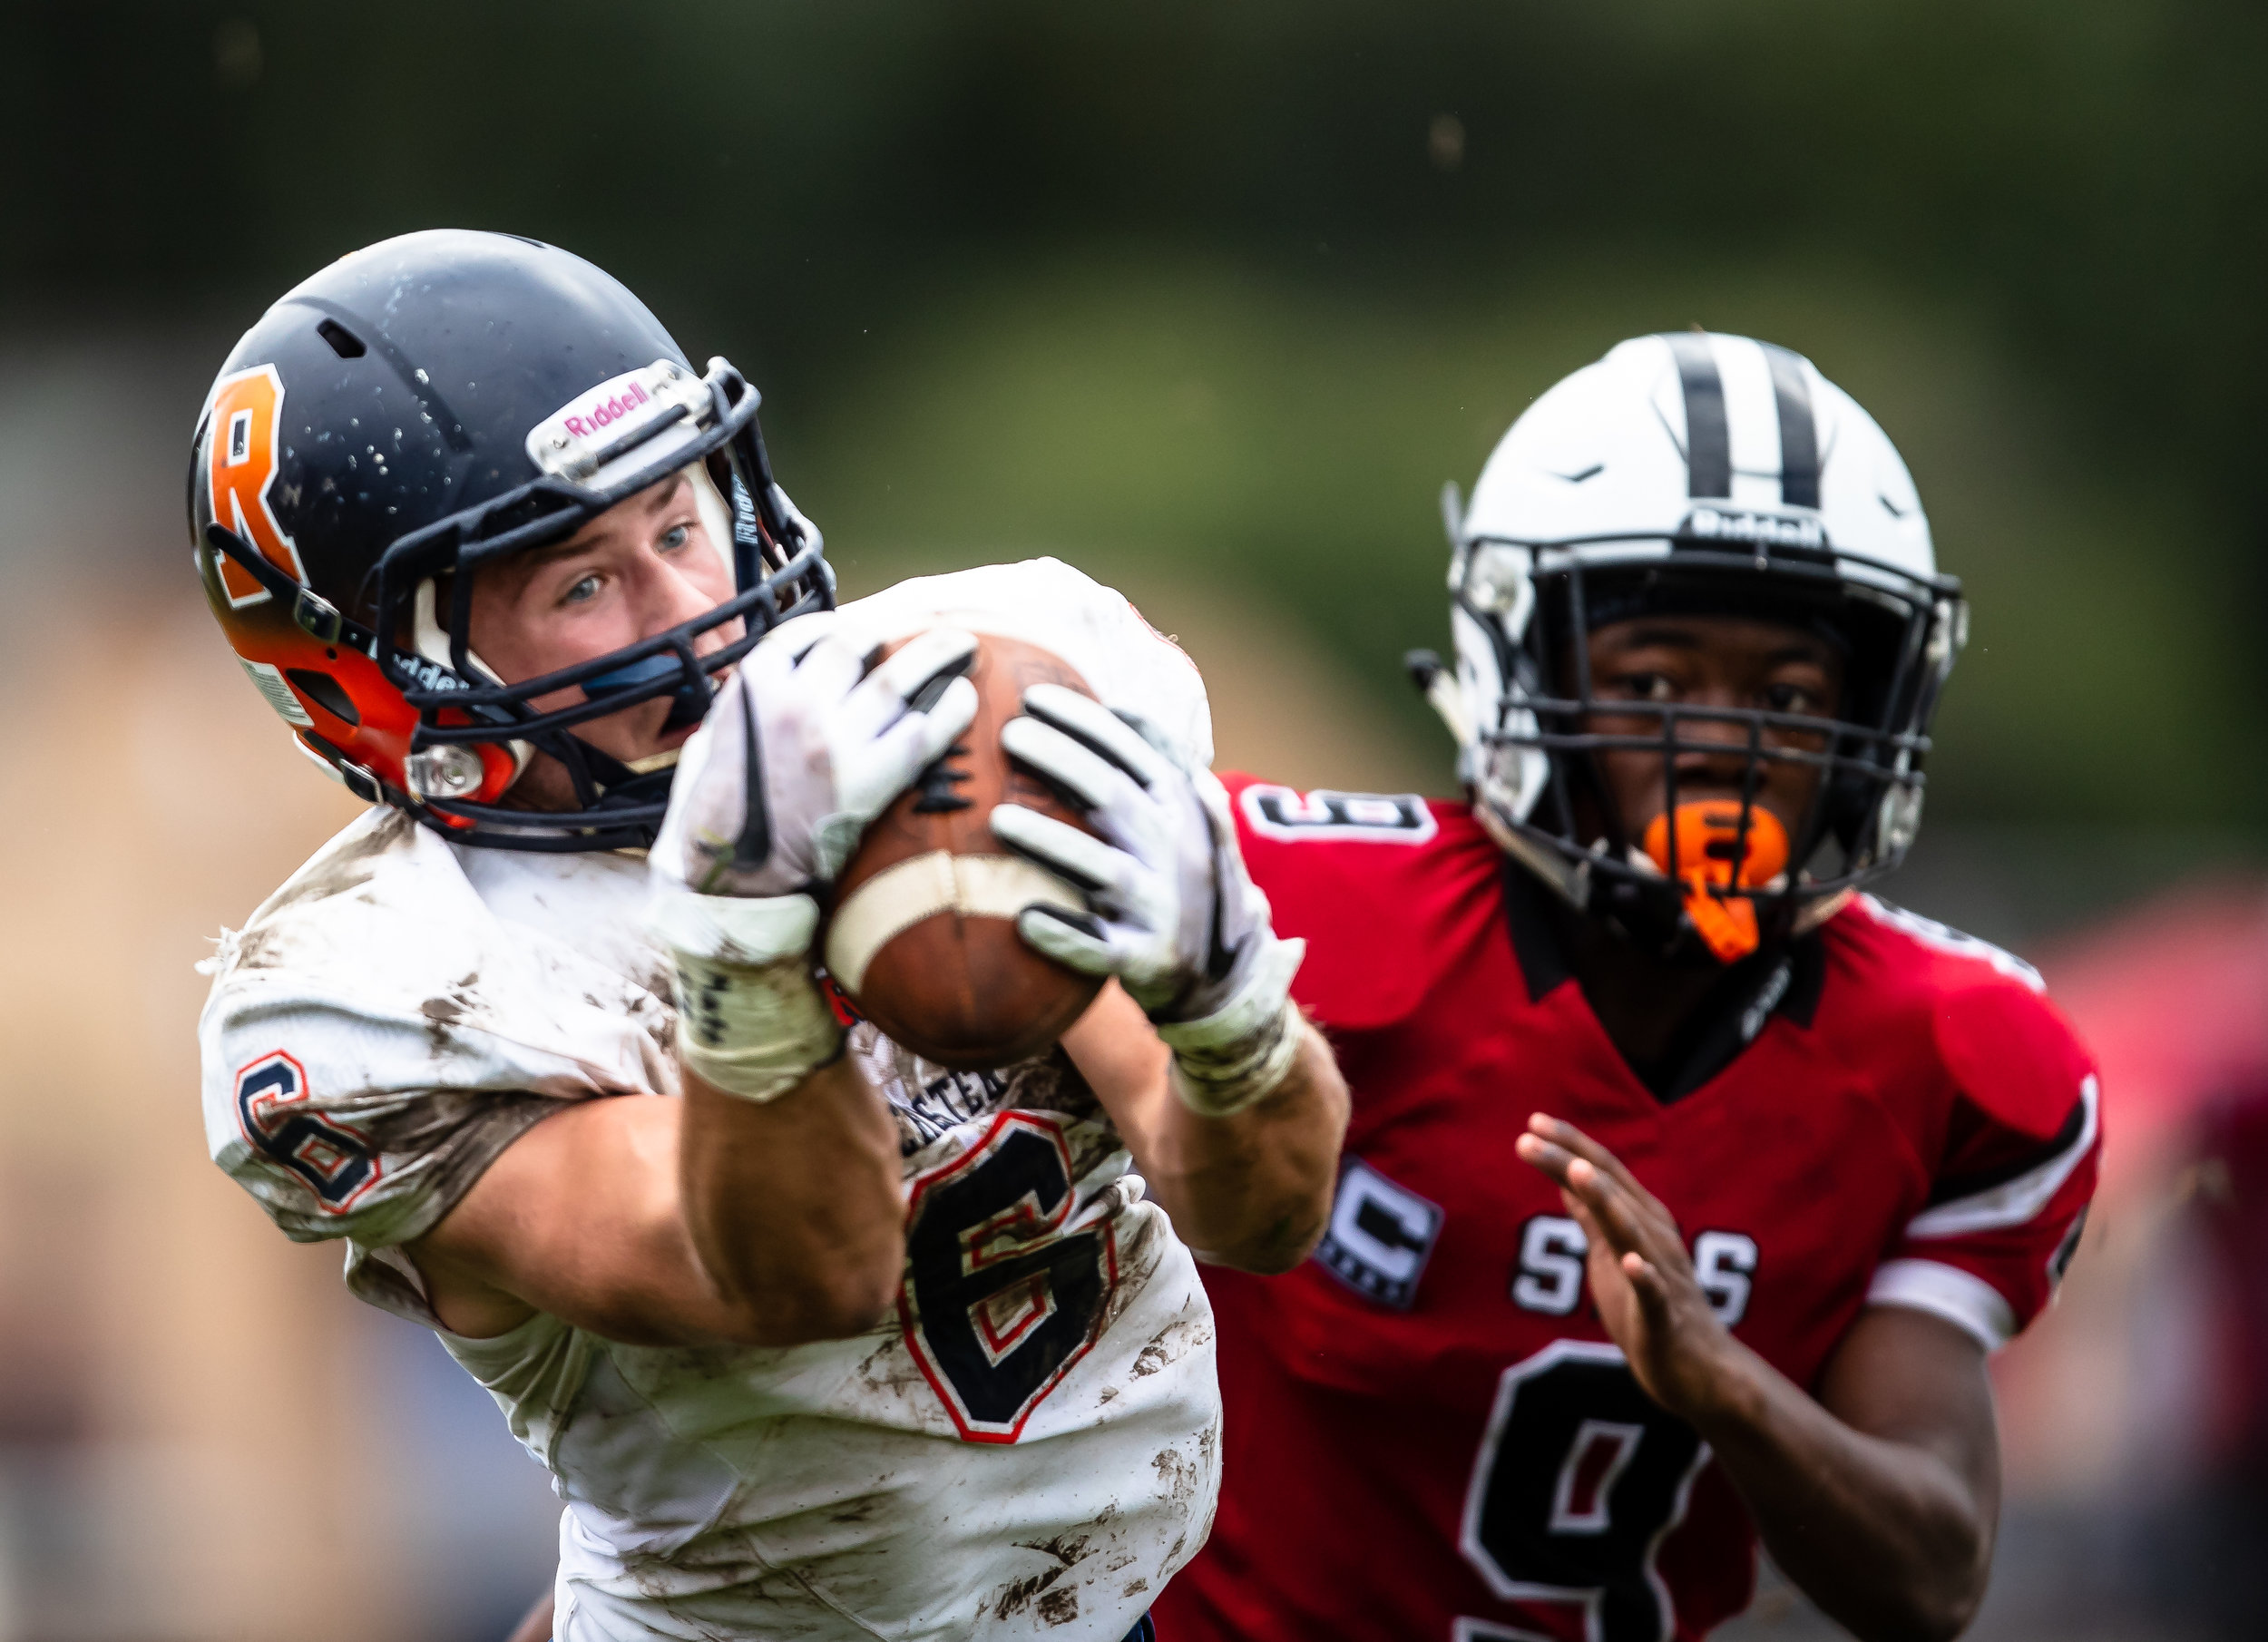 Rochester's Cade Eddington (6) hauls in a pass against Springfield's Jeffery Elms (9) in the first half at Memorial Stadium, Saturday, Oct. 6, 2018, in Springfield, Ill. [Justin L. Fowler/The State Journal-Register]